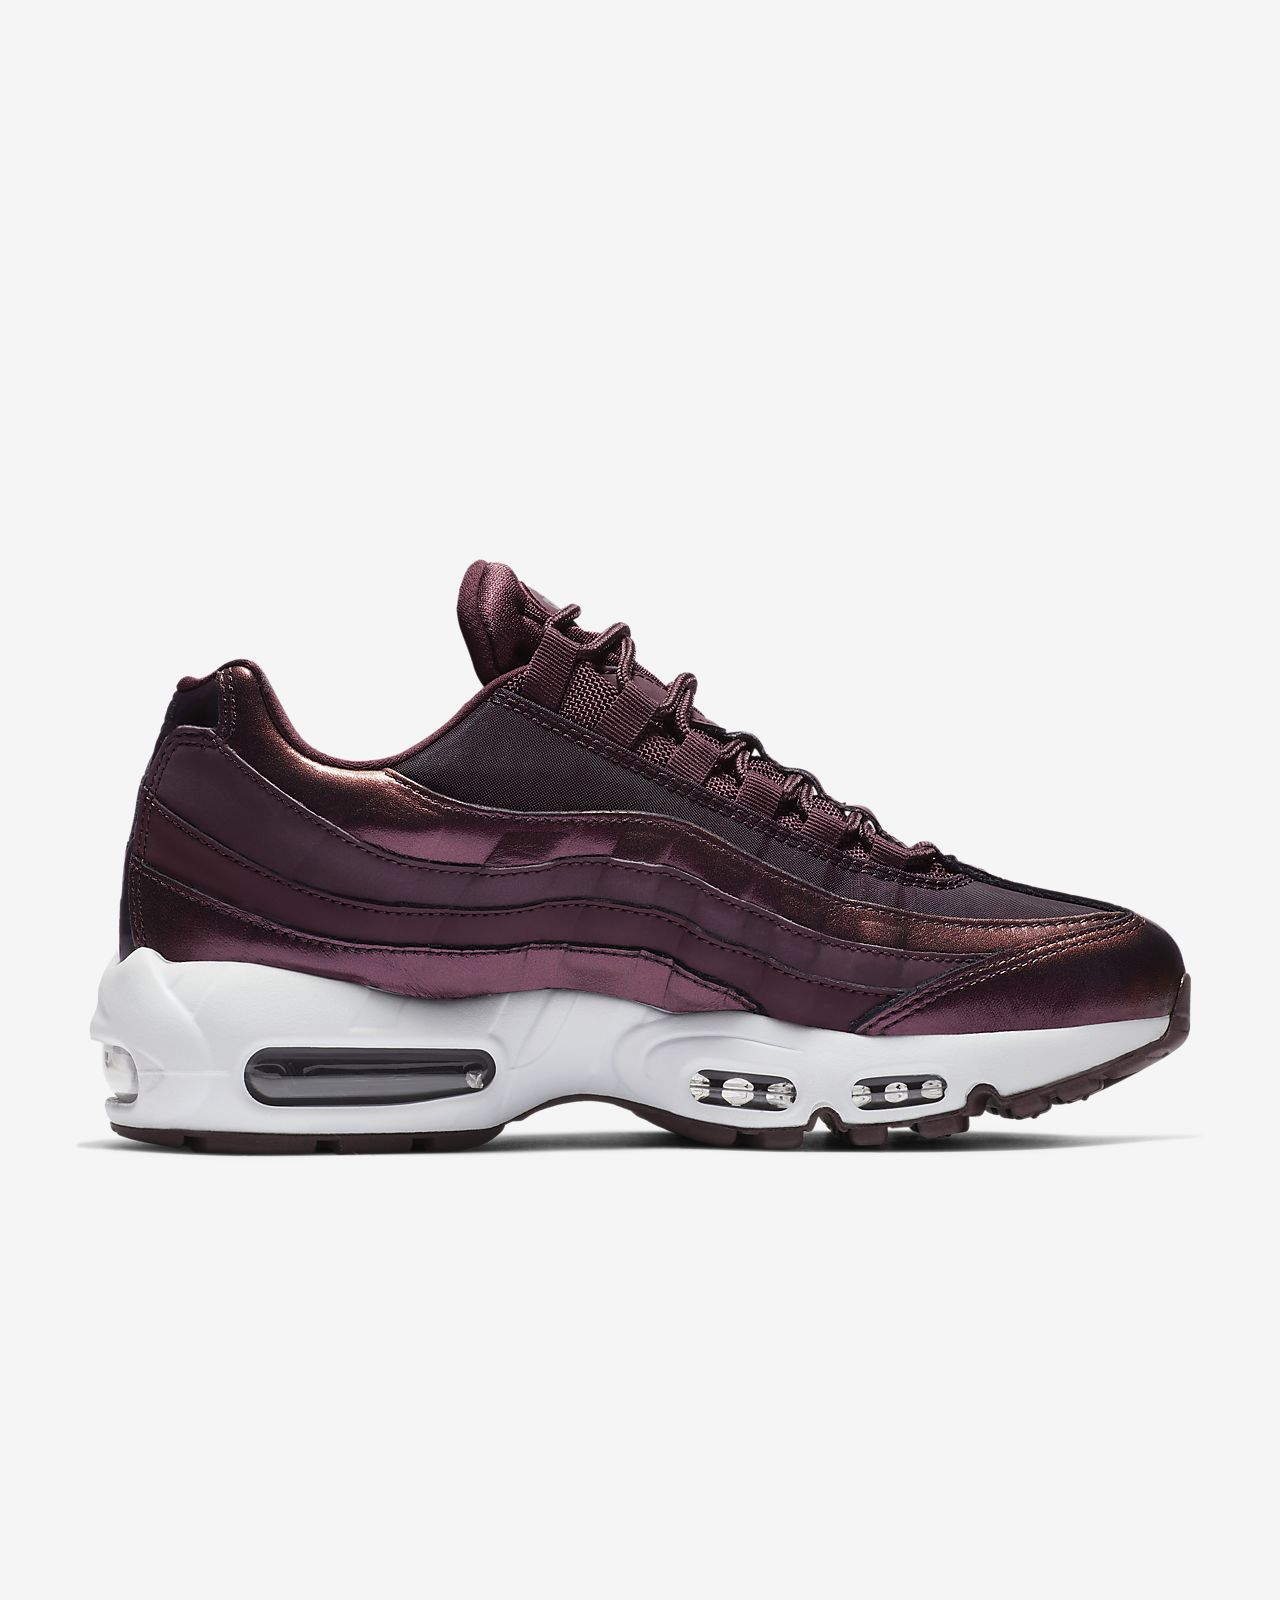 6dfff77b8be41f Nike Air Max 95 Lux Women s Shoe. Nike.com AU